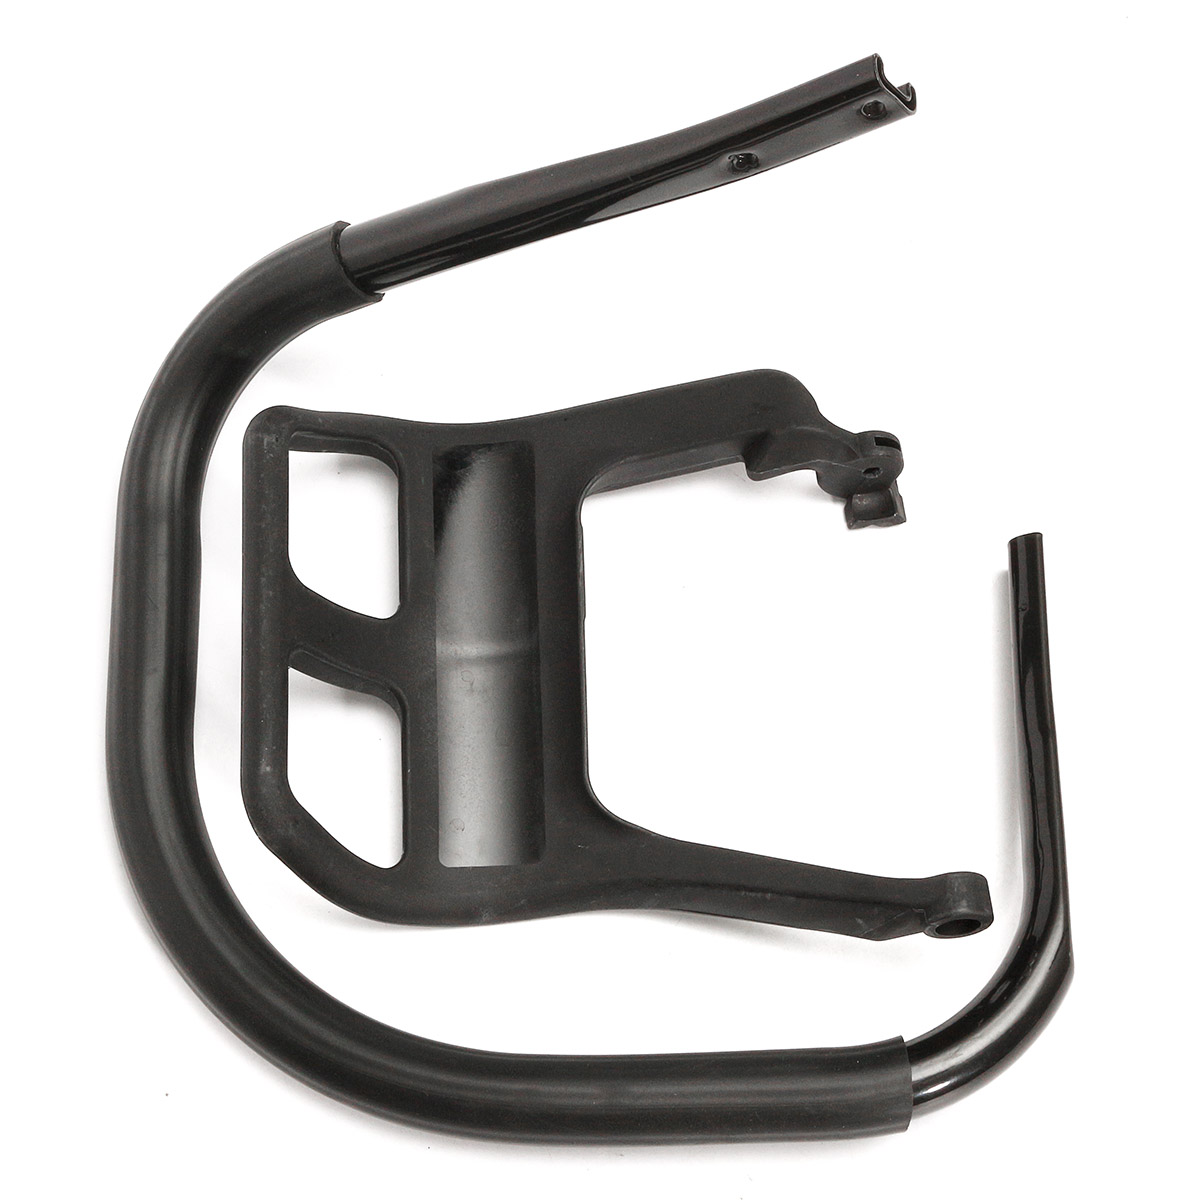 Brake Handle & Rear Handlebar for STIH L 066 <font><b>MS660</b></font> MS 660 Chainsaw Spare <font><b>Parts</b></font> image